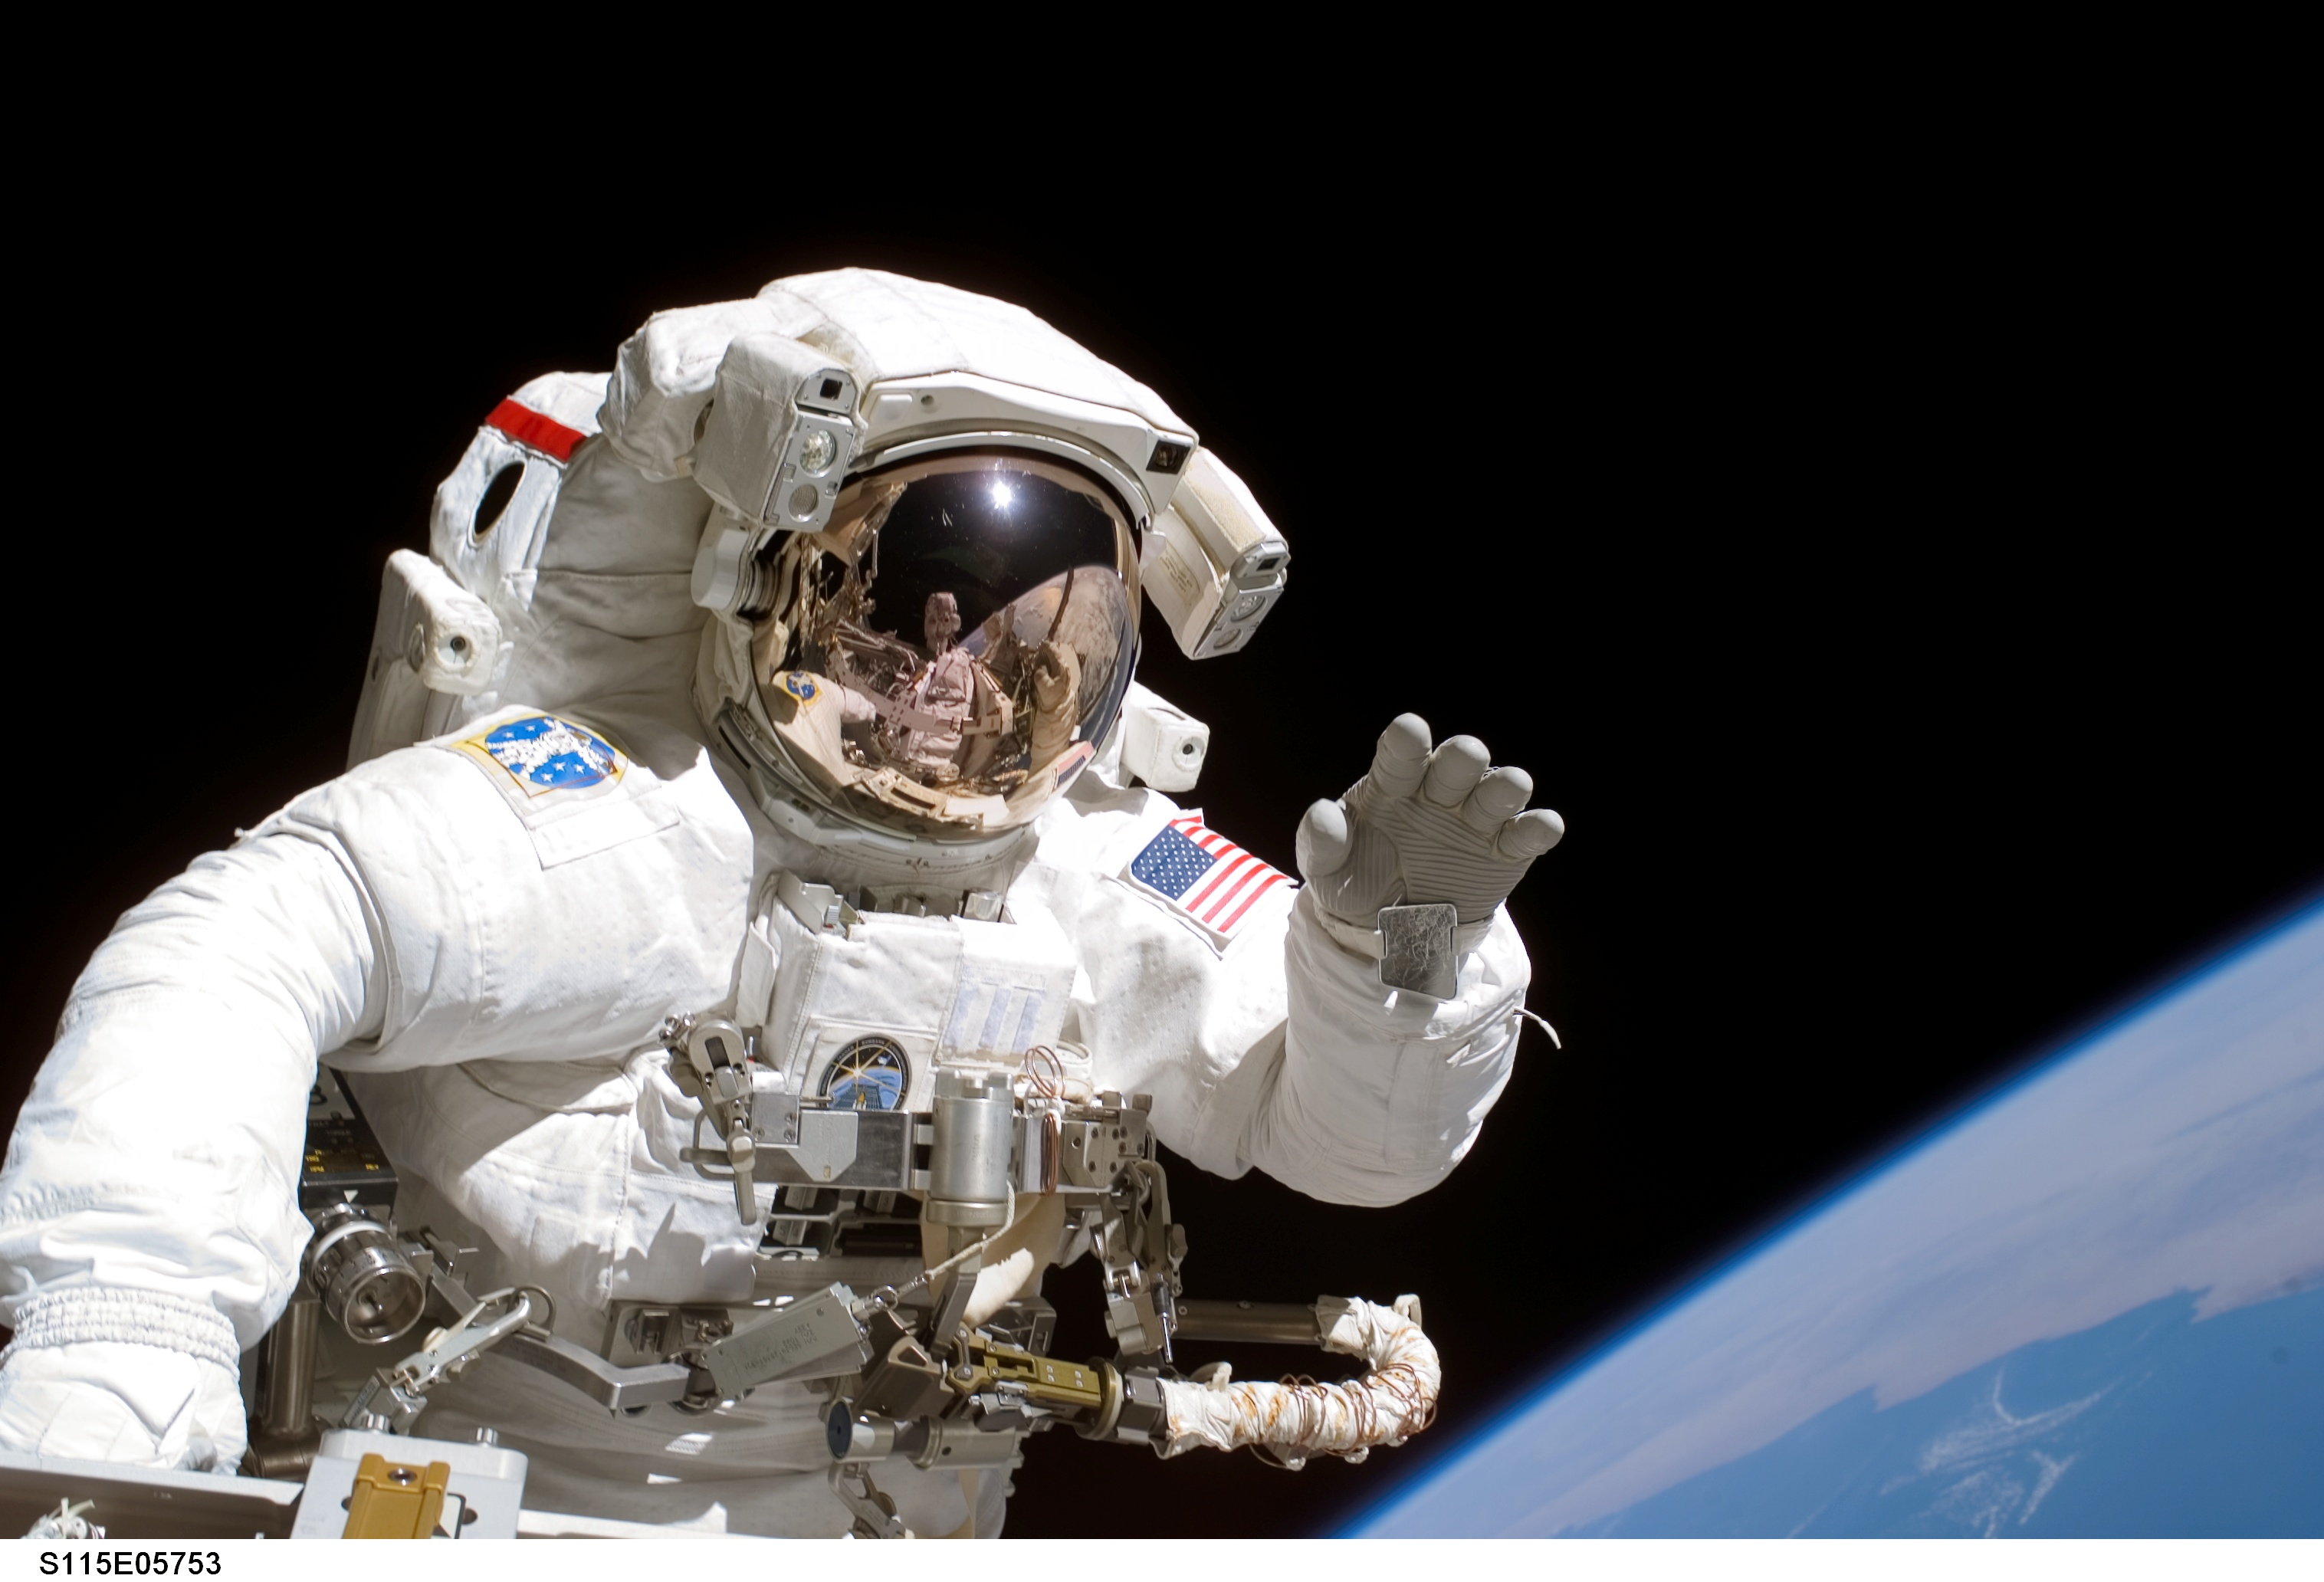 an astronaut in space will observe the sky as - photo #19